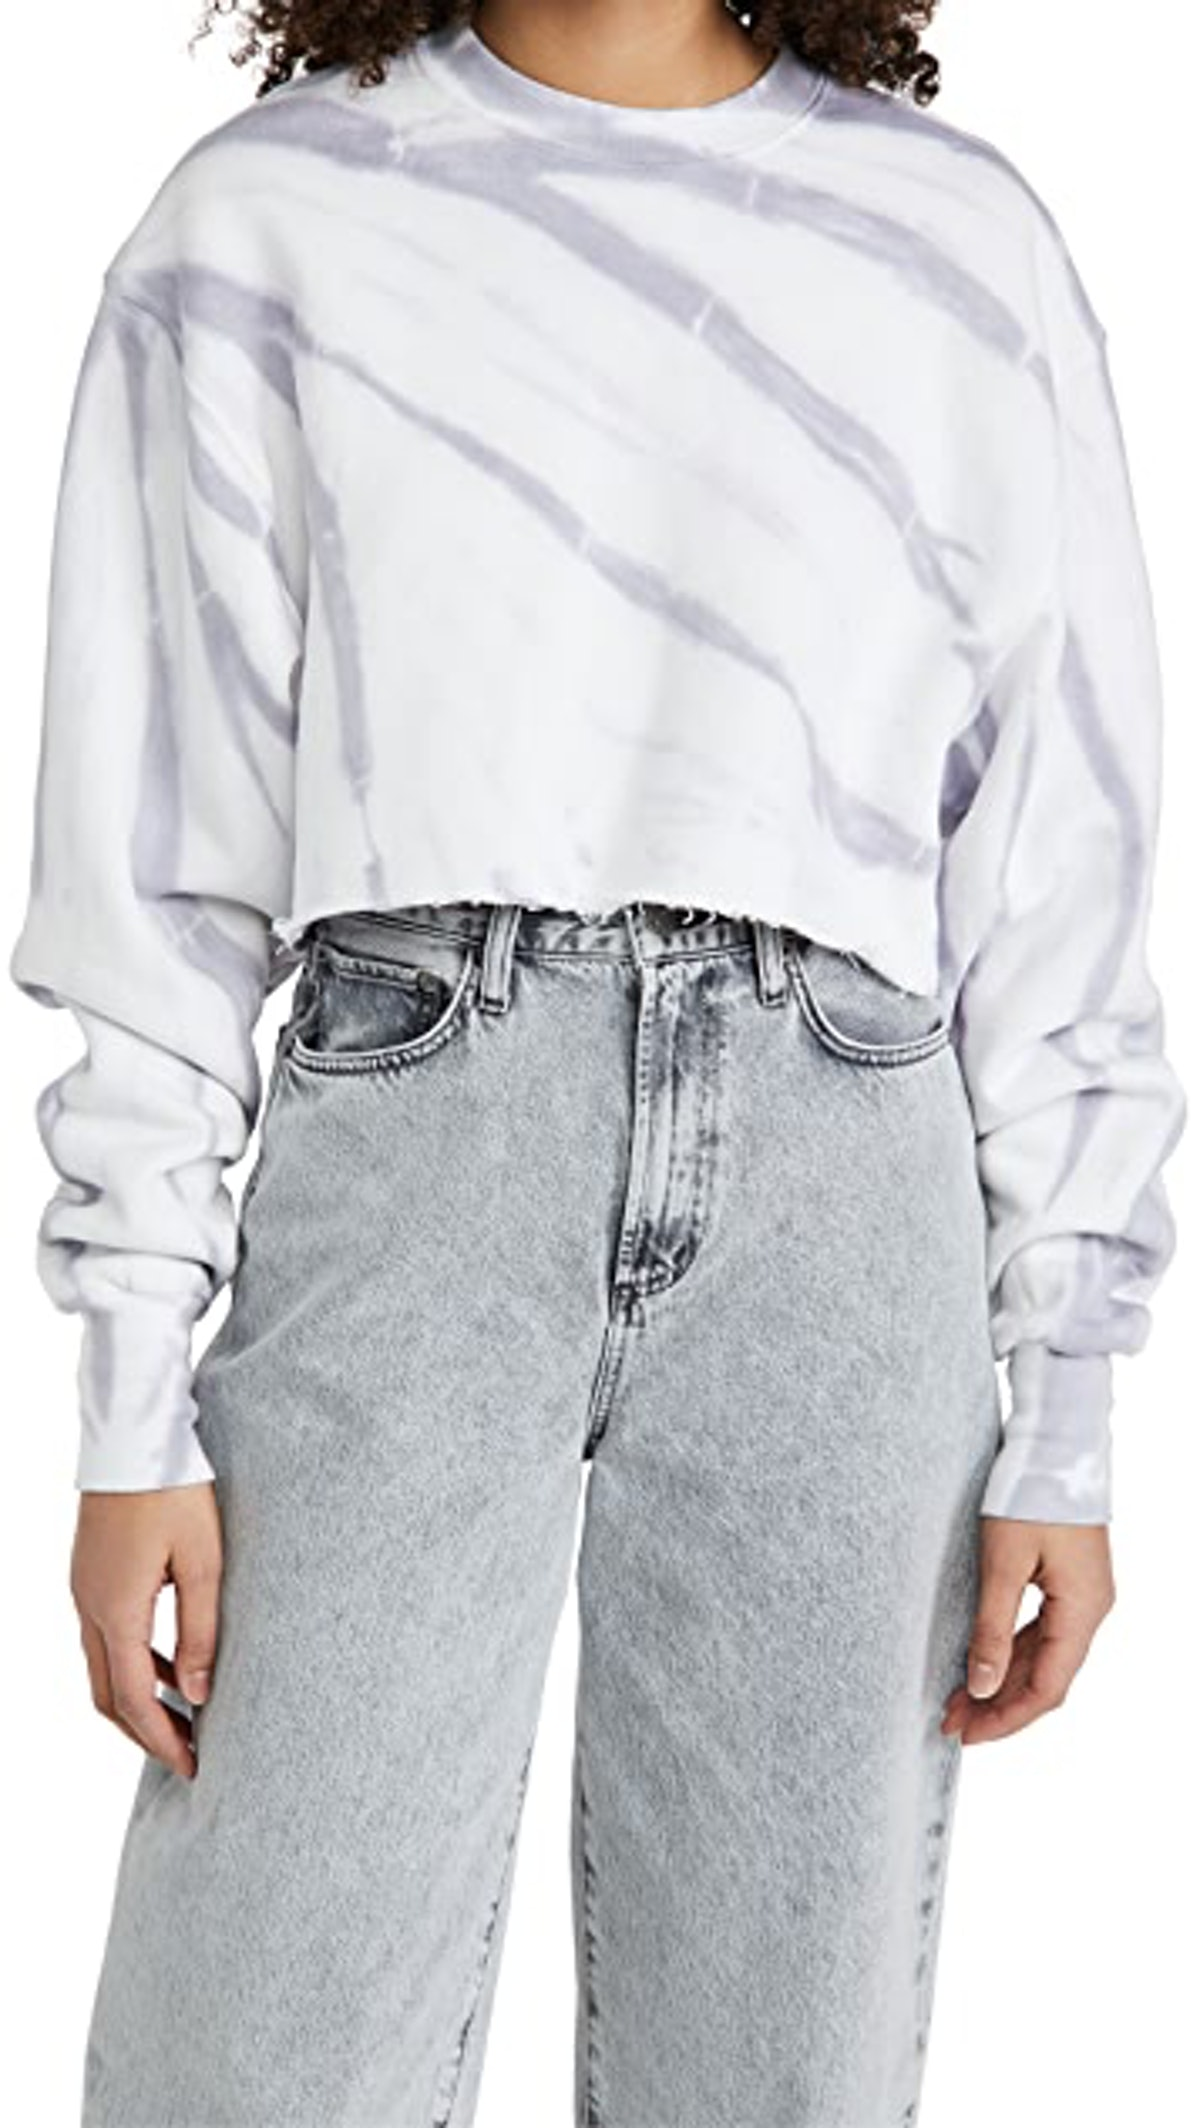 Cropped and Cool Sweatshirt